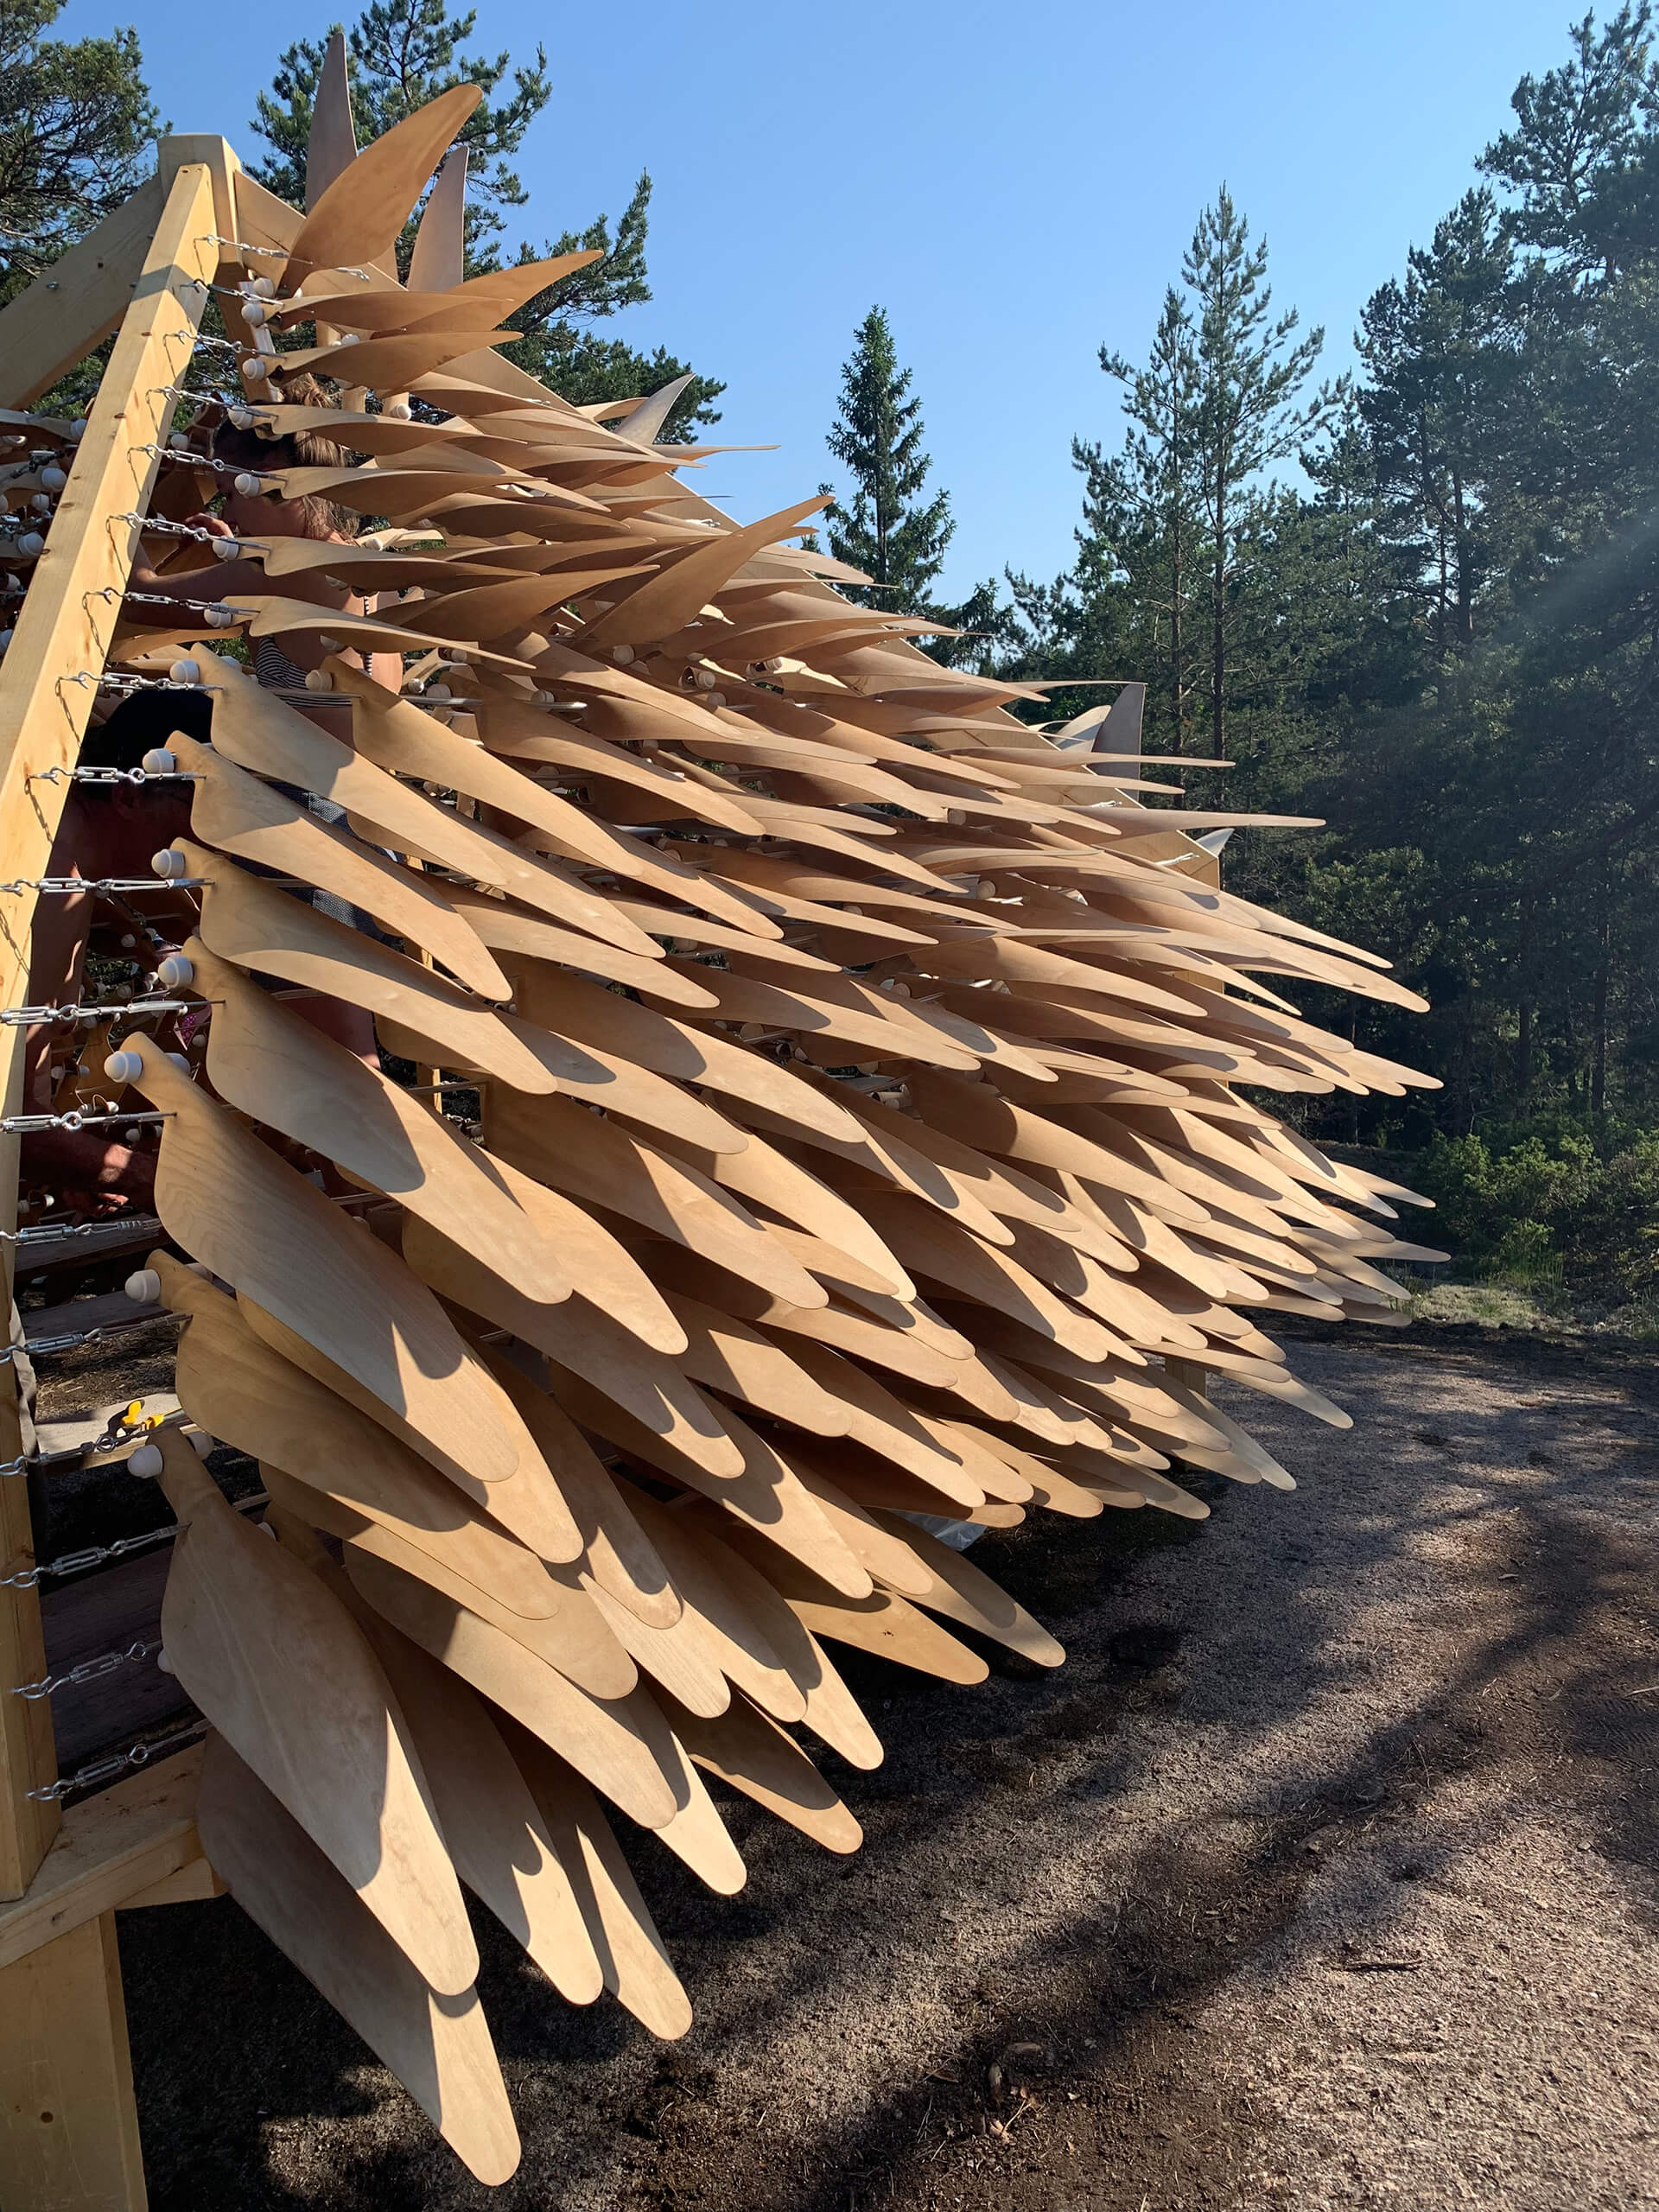 The kinetic shingles respond to weather conditions | Shiver House | NEON | STIRworld